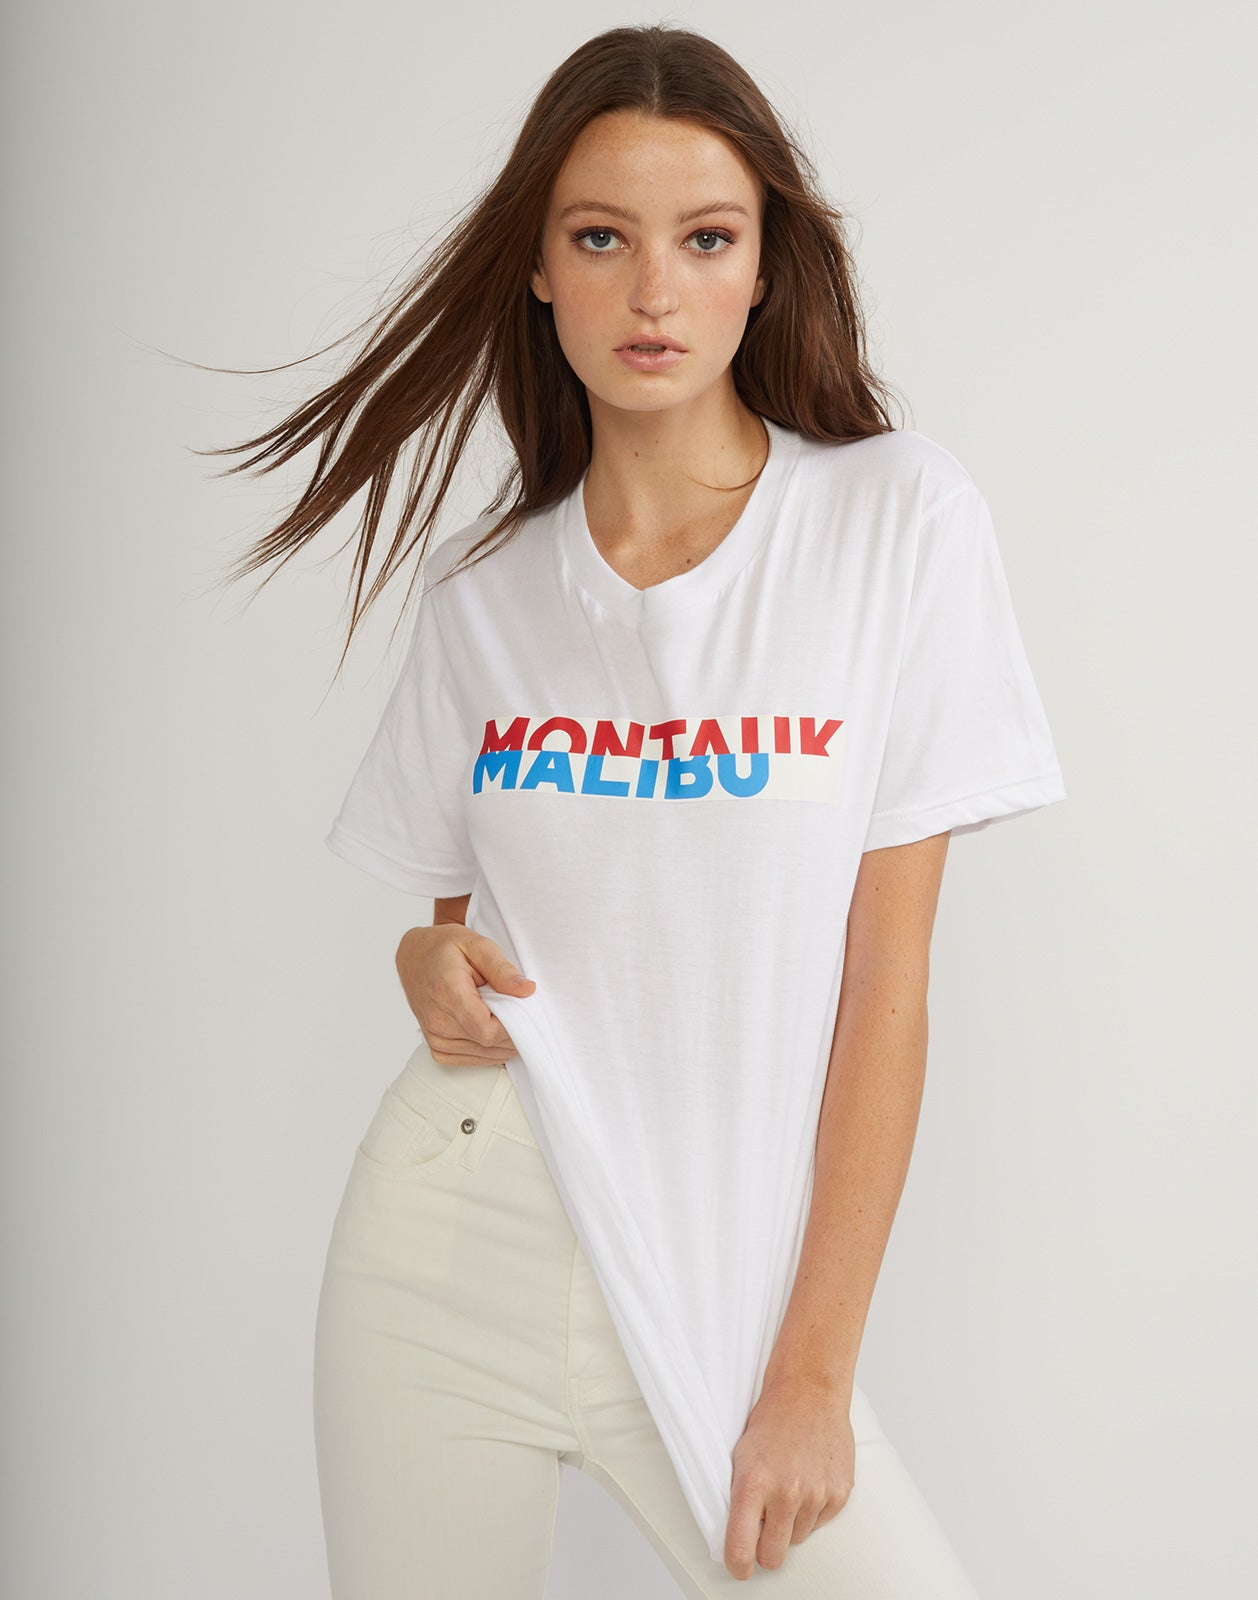 Front detail view of the montauk malibu tee.